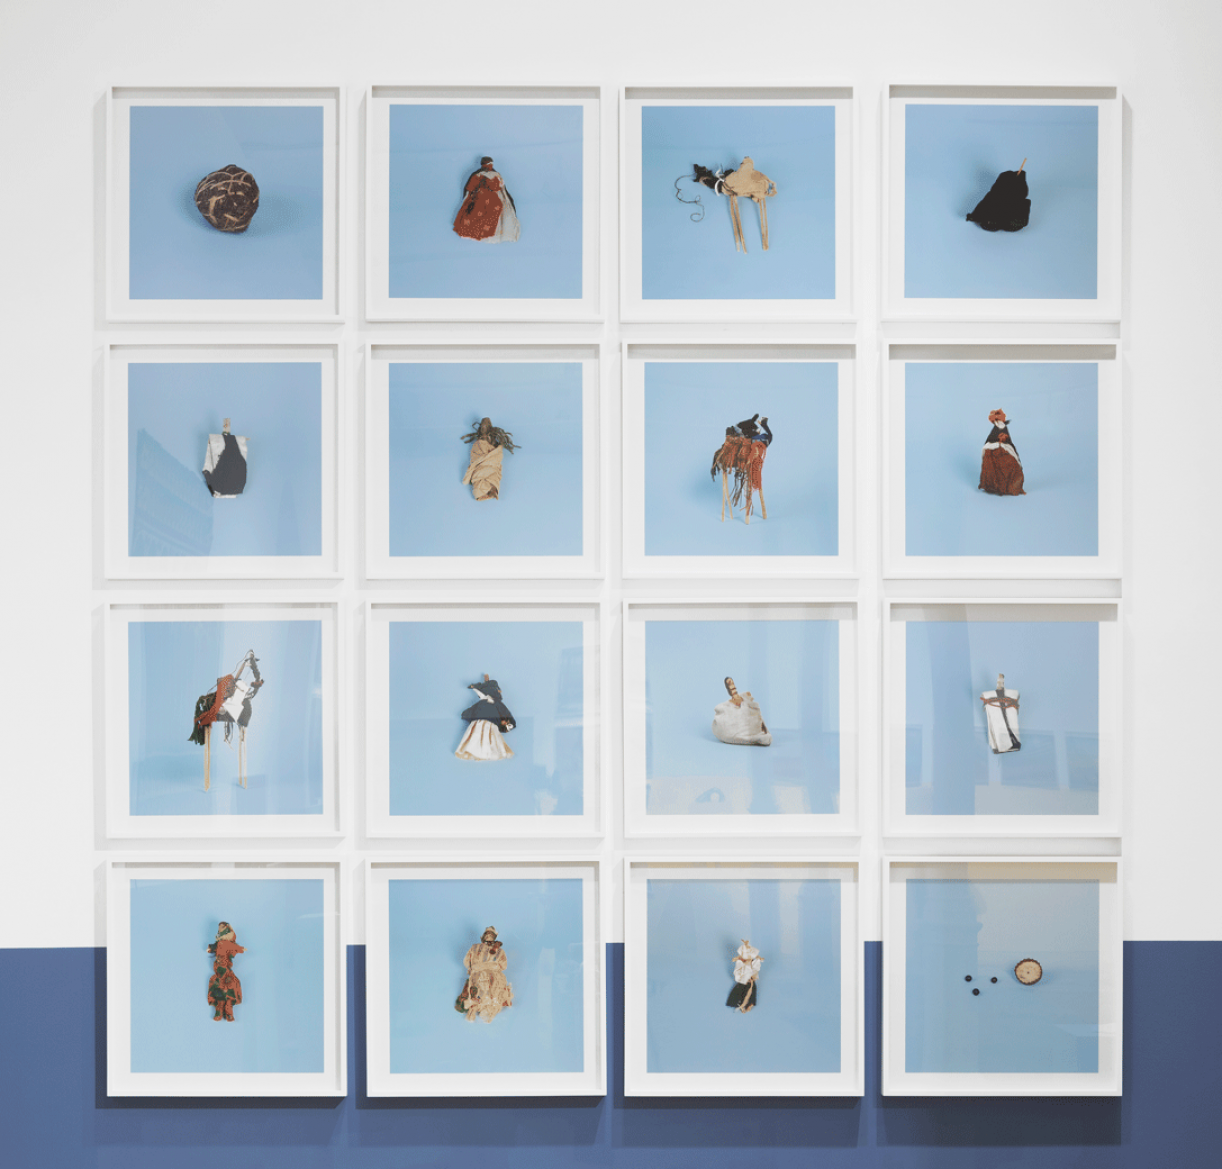 Untitled (North African Toys Series, dolls), 2014-2015, archival pigment print, 60 x 60 cm